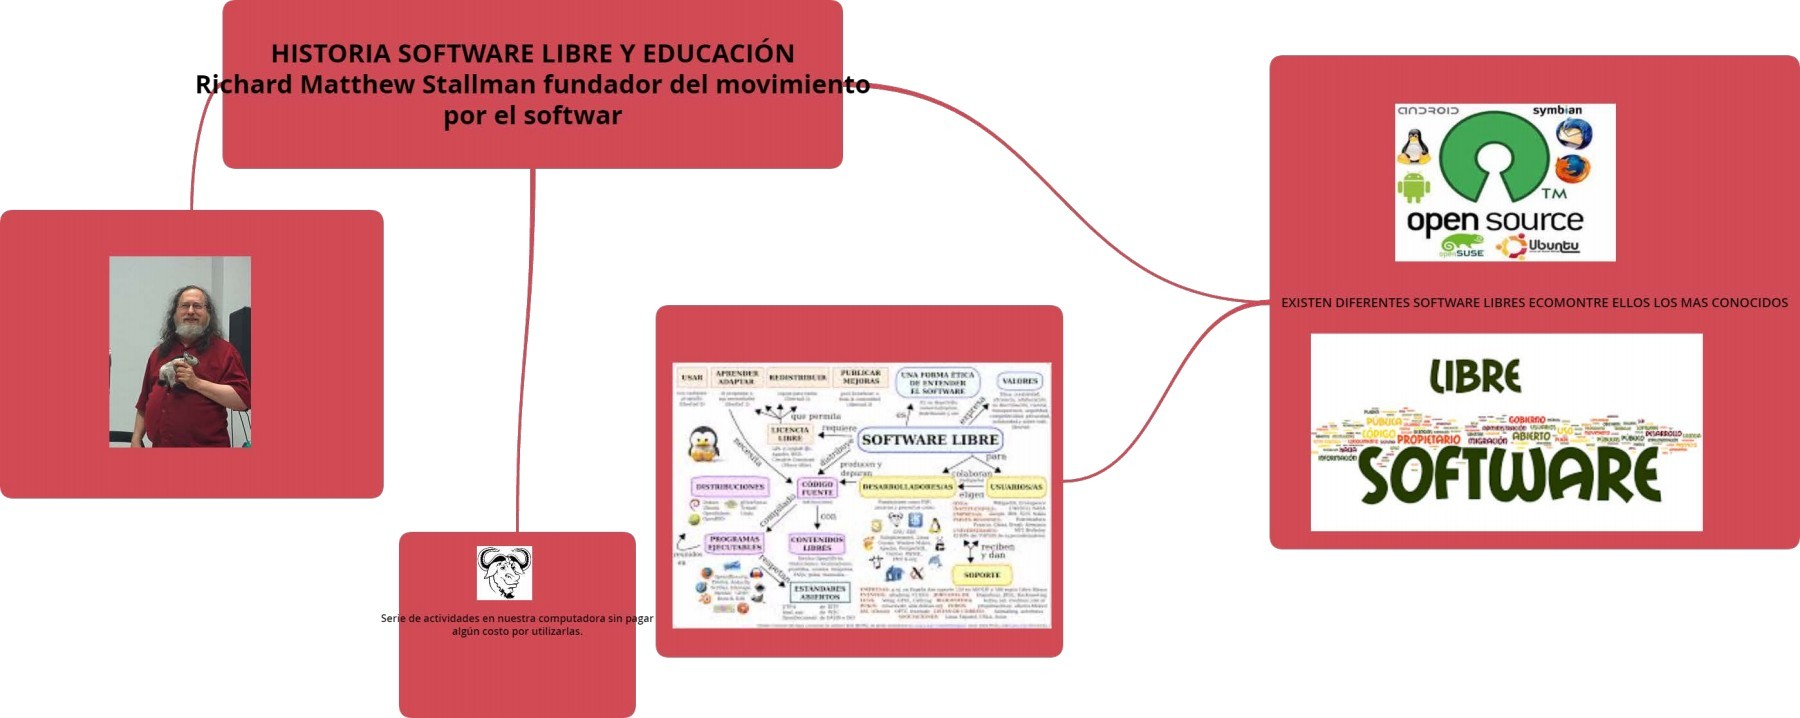 Historia Del Software Libre Historia Software Libre Y EducaciÓn Richard Matthew Stallman